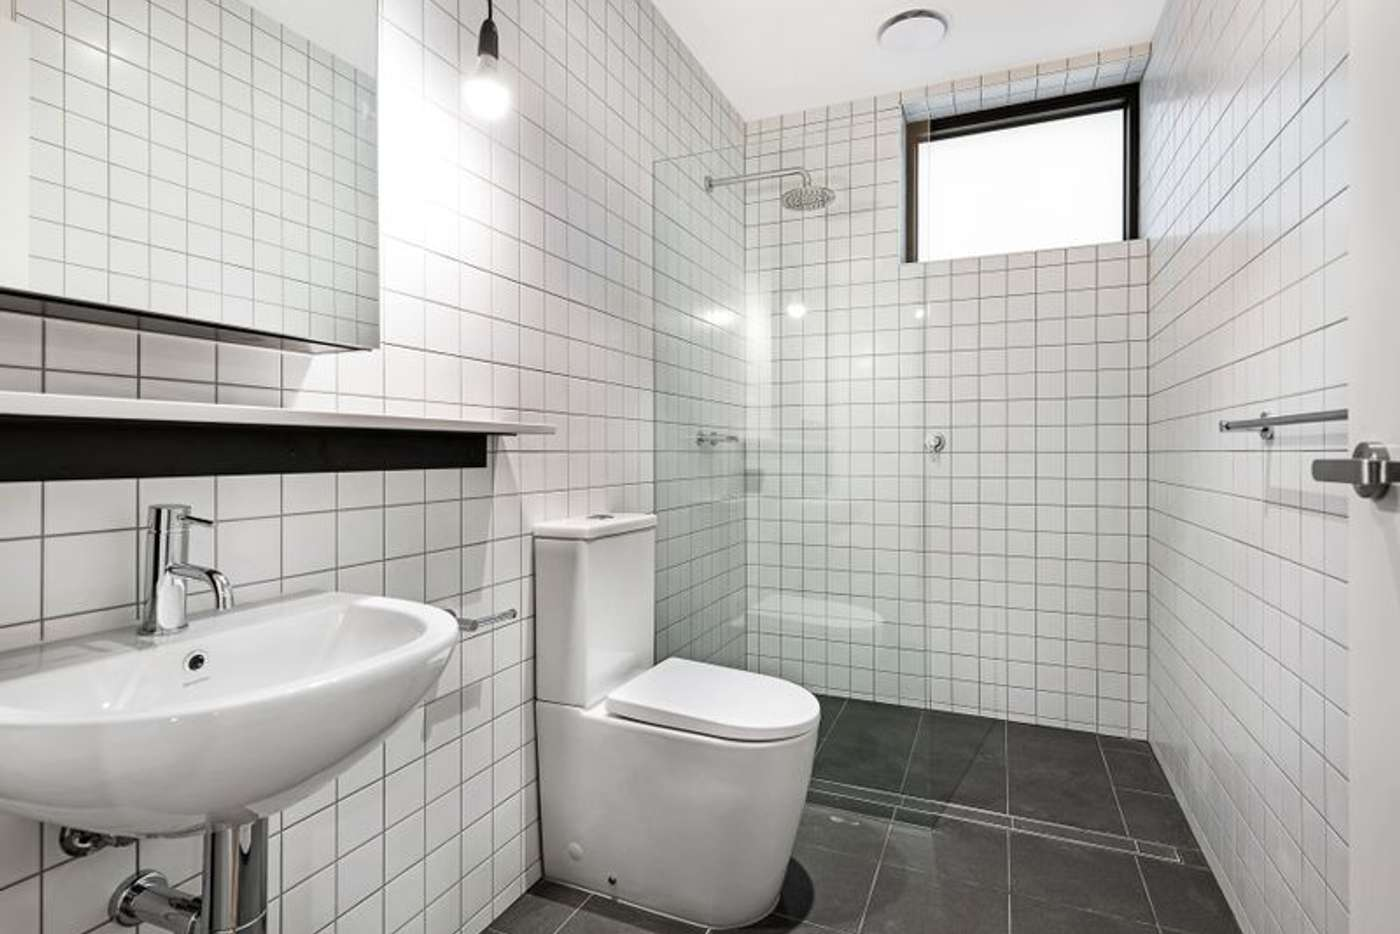 Fifth view of Homely apartment listing, 302/28 Curzon Street, West Melbourne VIC 3003